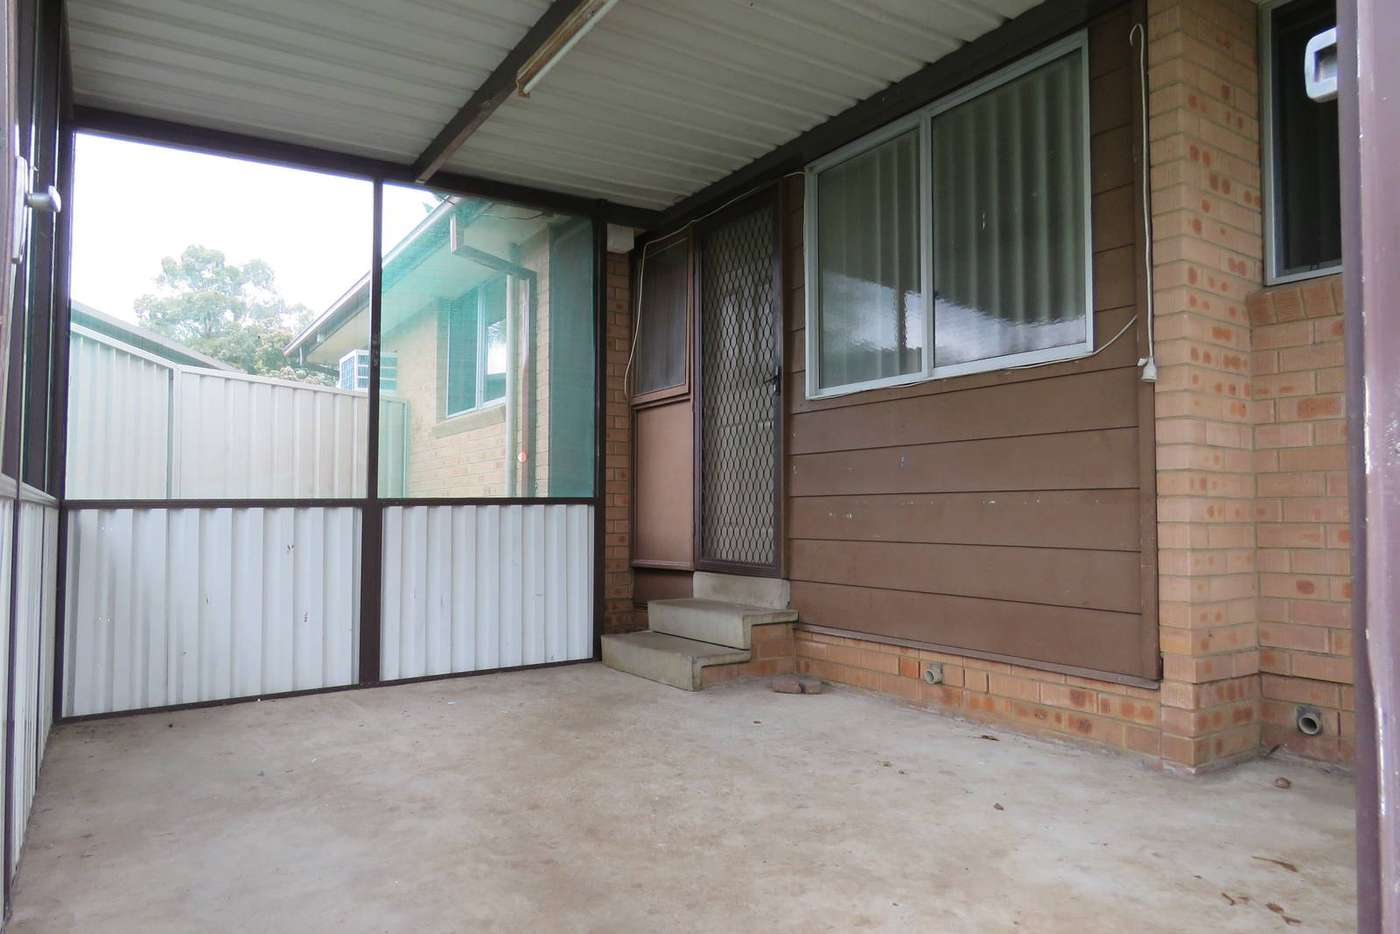 Seventh view of Homely house listing, 10 McCartney Crescent, St Clair NSW 2759